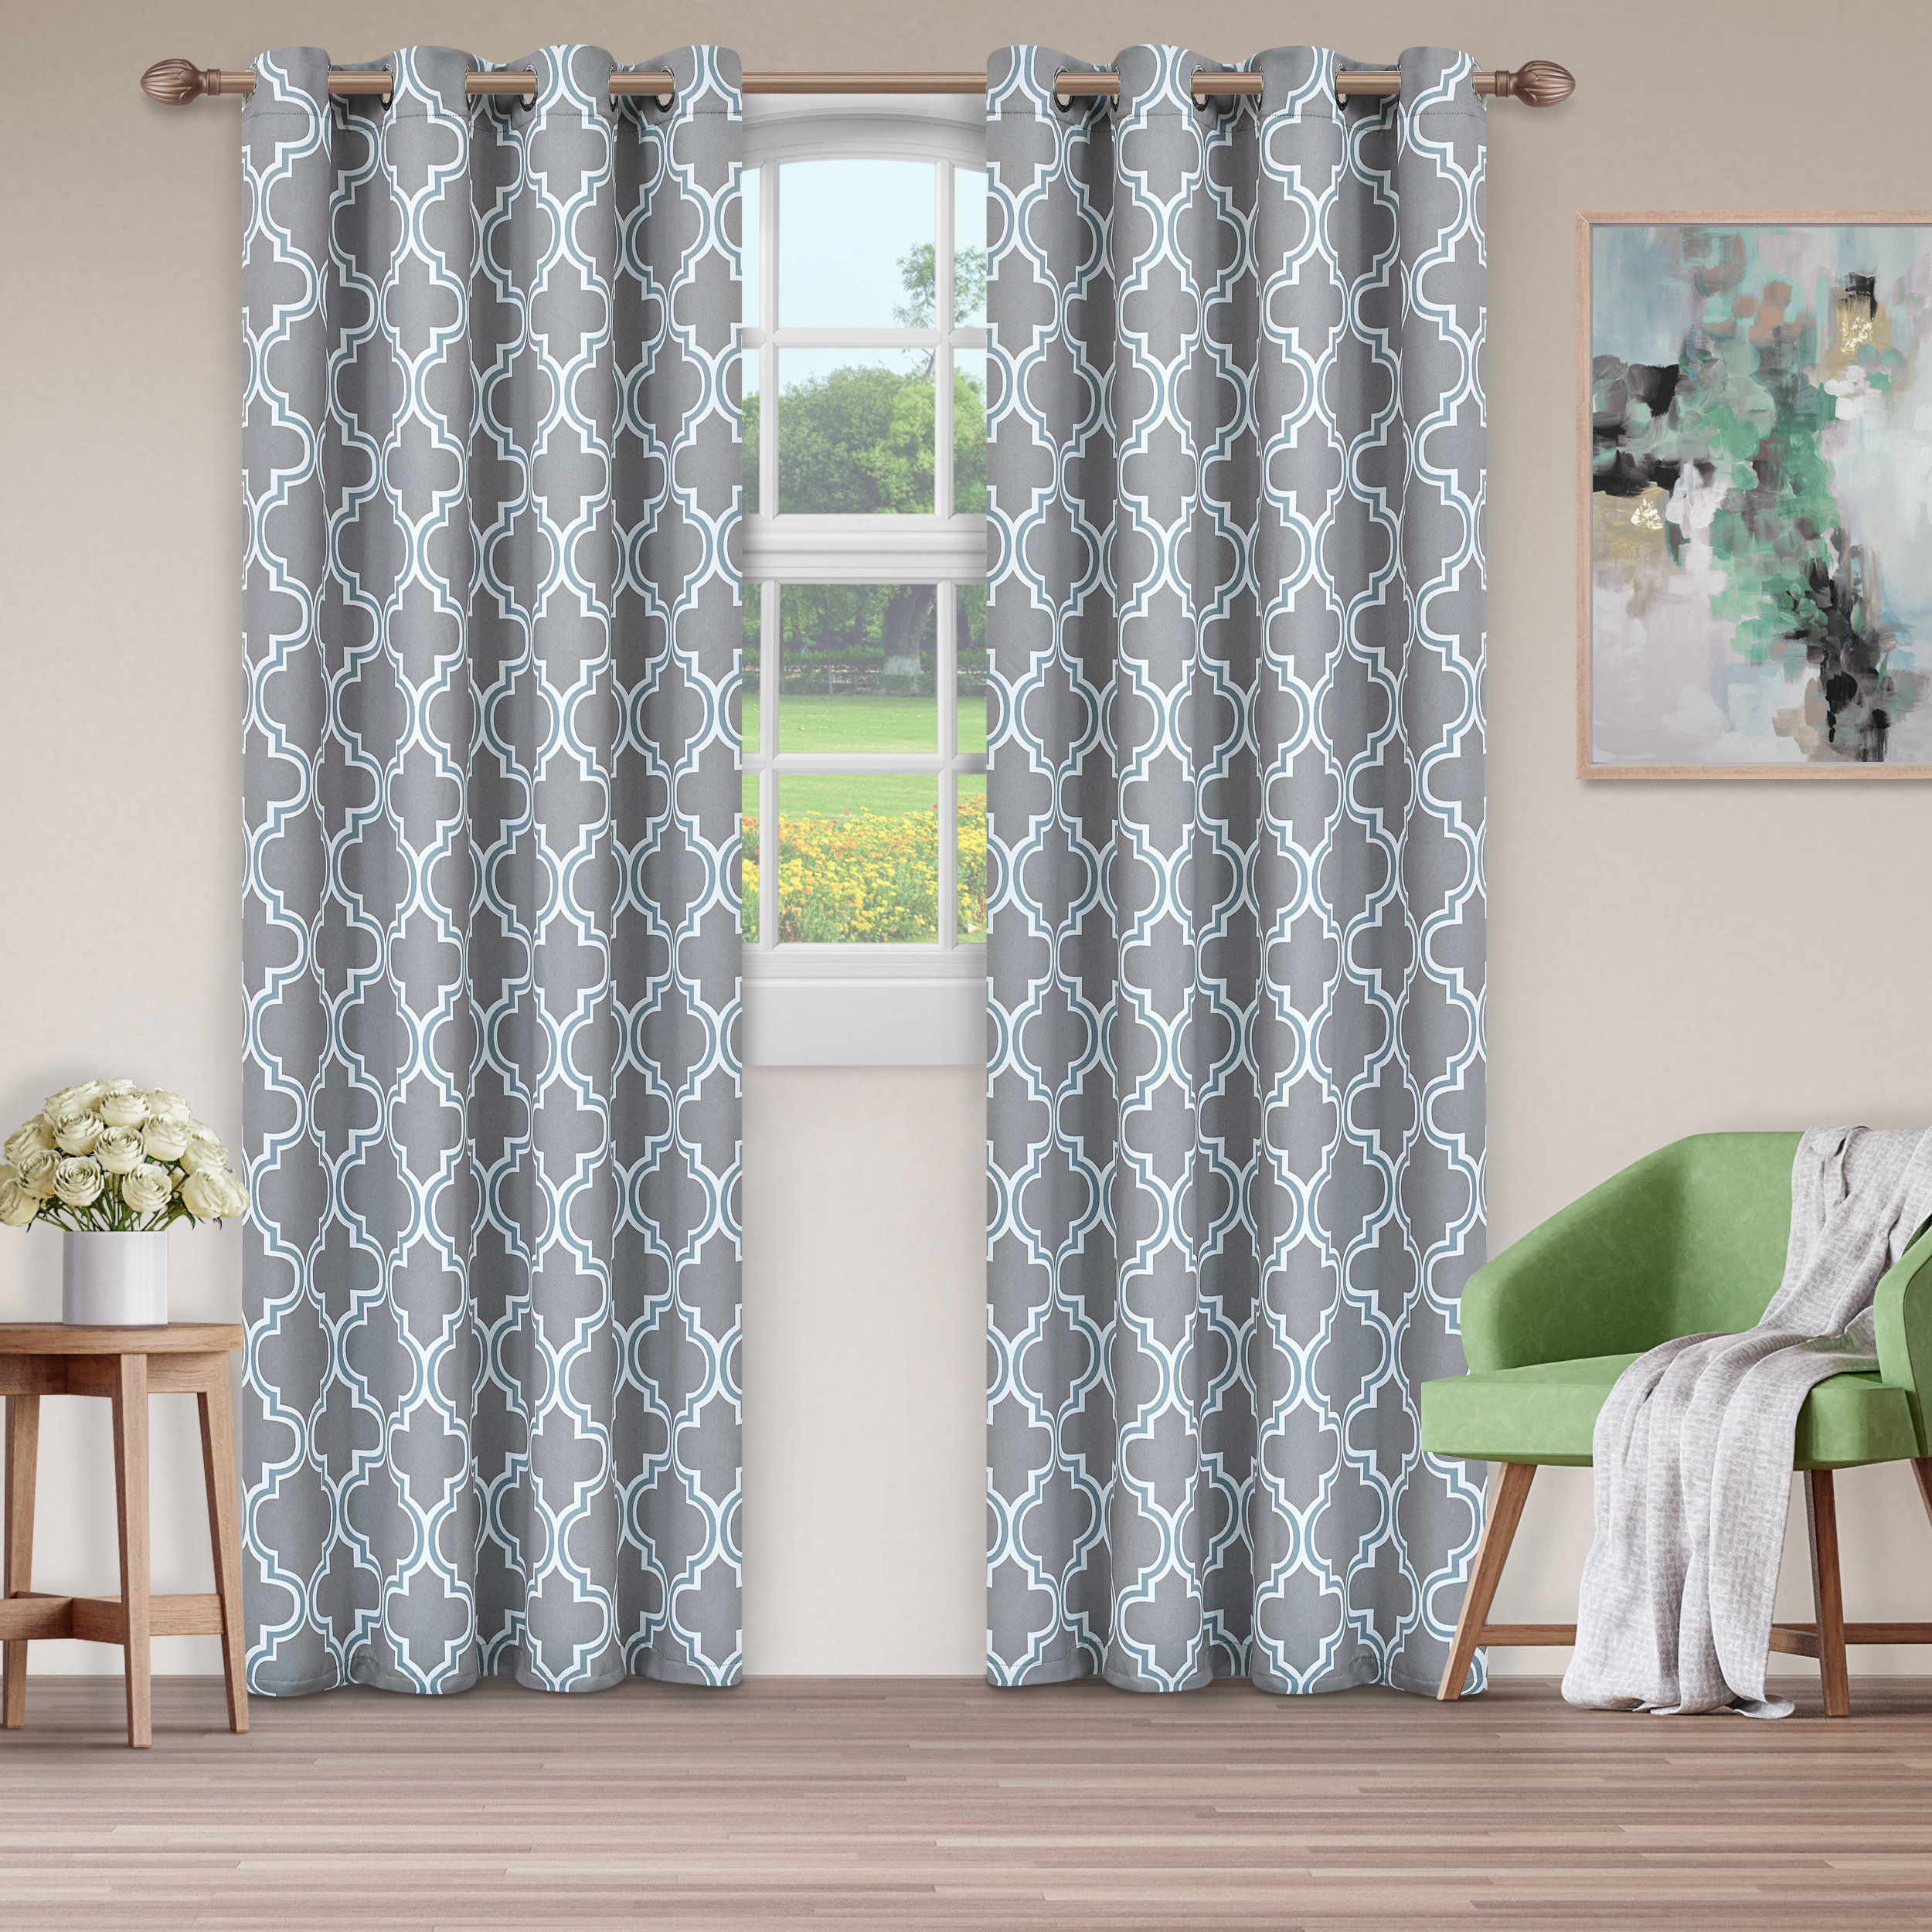 Superior Soft Quality Woven, Bohemian Trellis Blackout Thermal Grommet Curtain Panel Pair